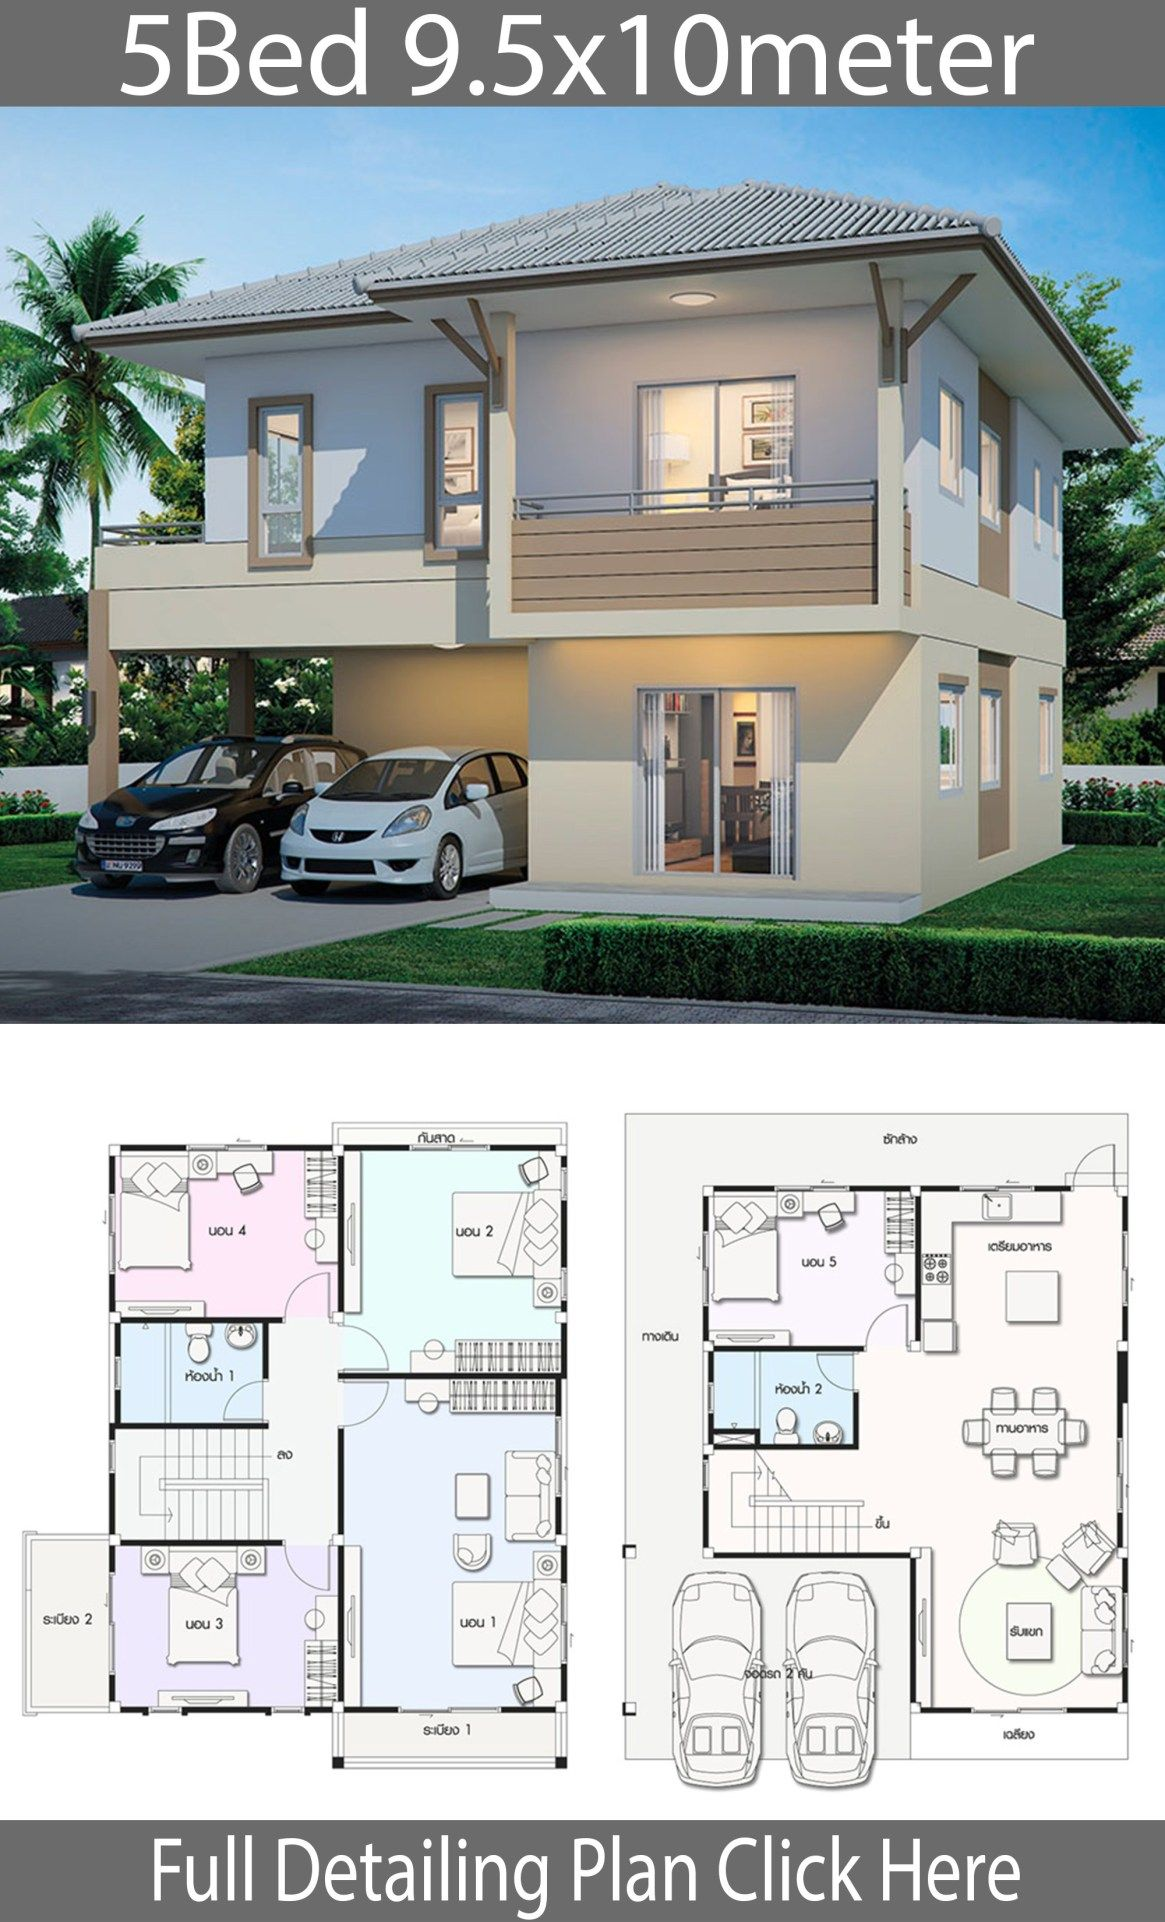 House Design 9 5x10m With 5 Bedrooms Home Design With Plansearch 2 Storey House Design Luxury House Plans House Designs Exterior